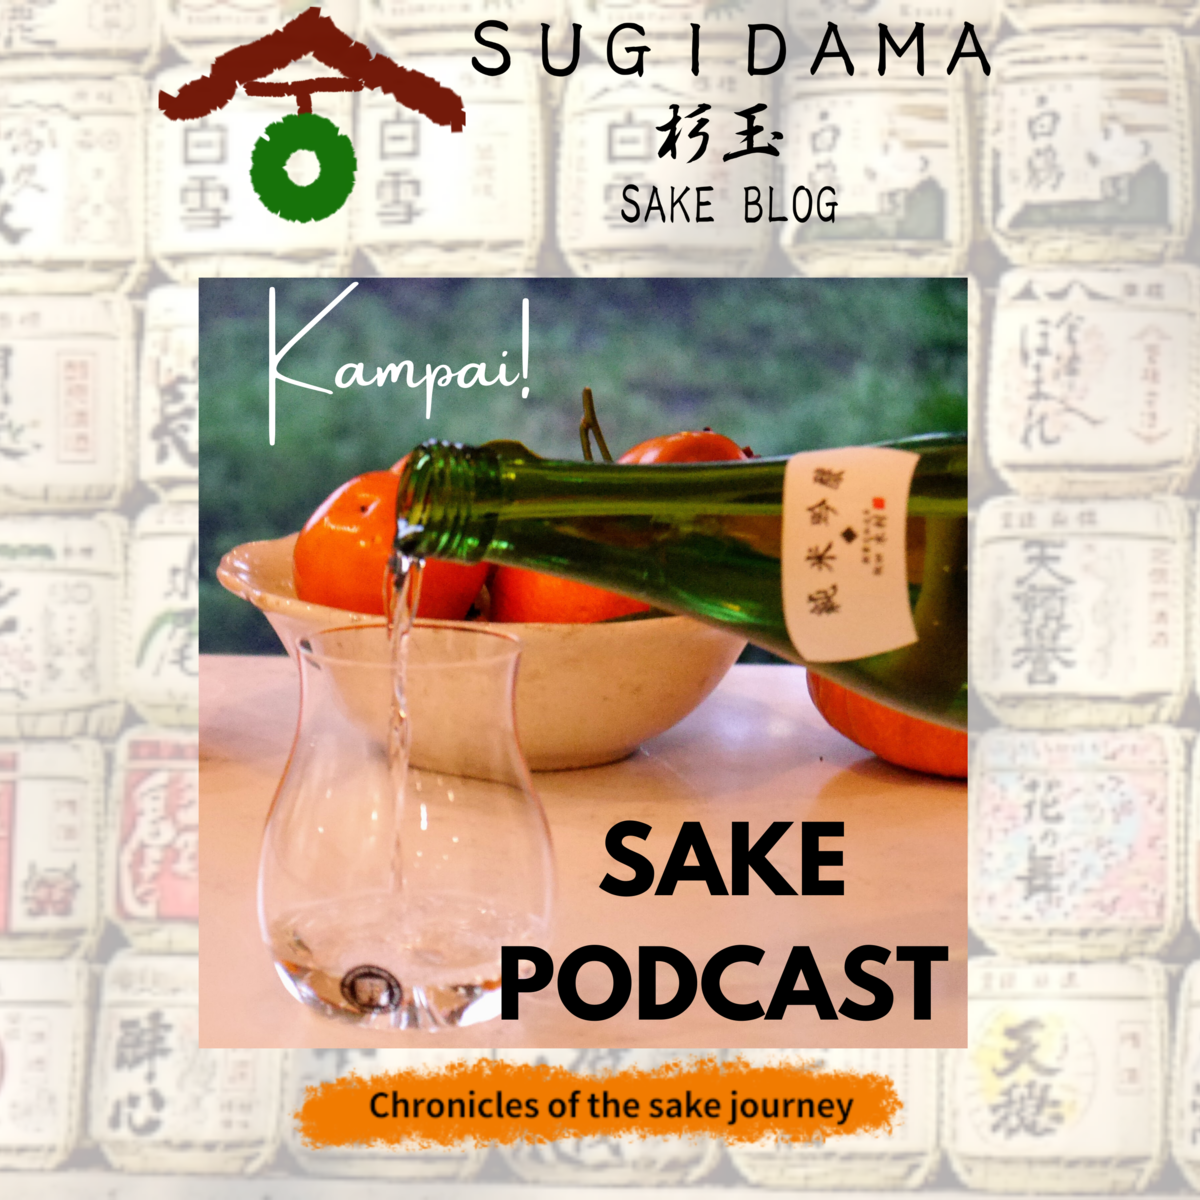 Sugidama Podcast Episode 04: From Kimoto to Sokujo and Back Again